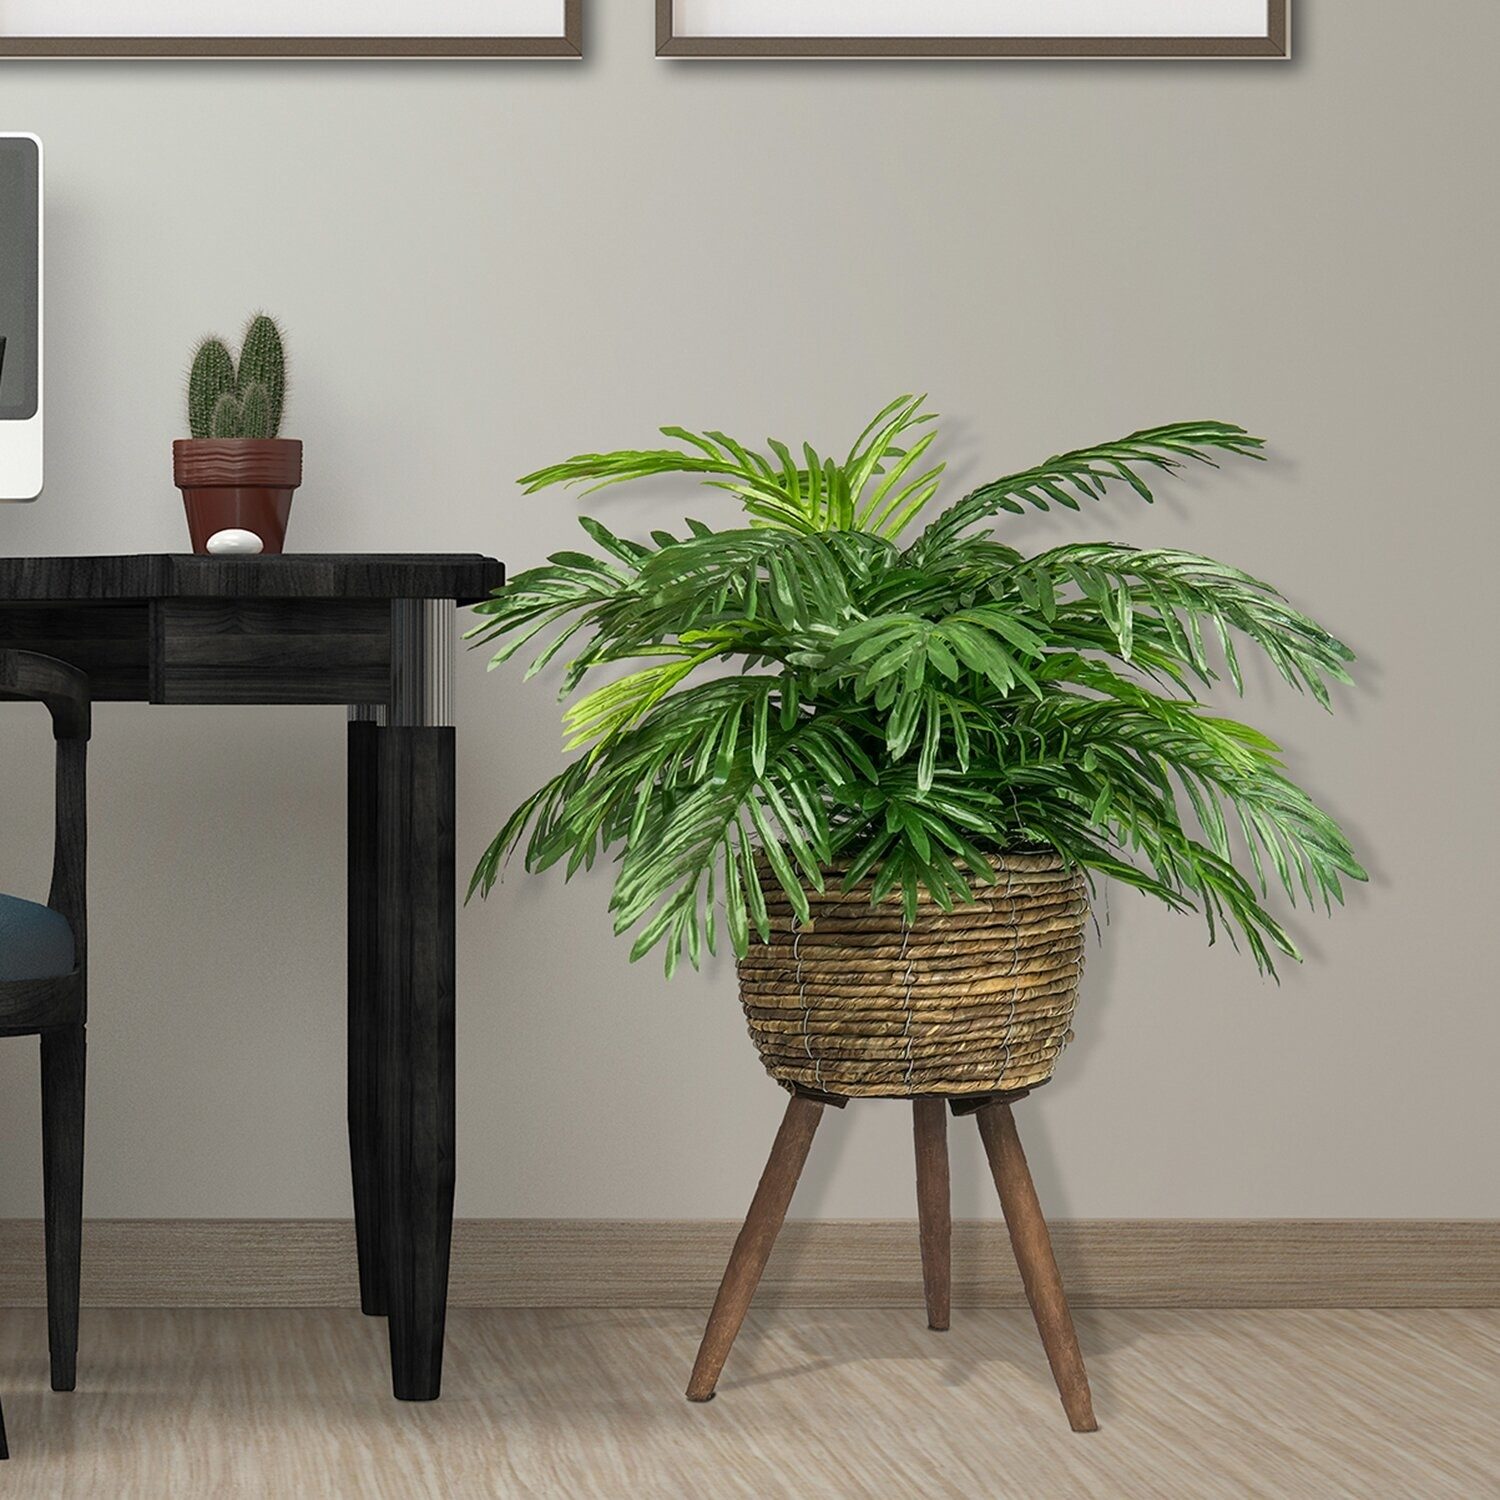 Fake plant in living room